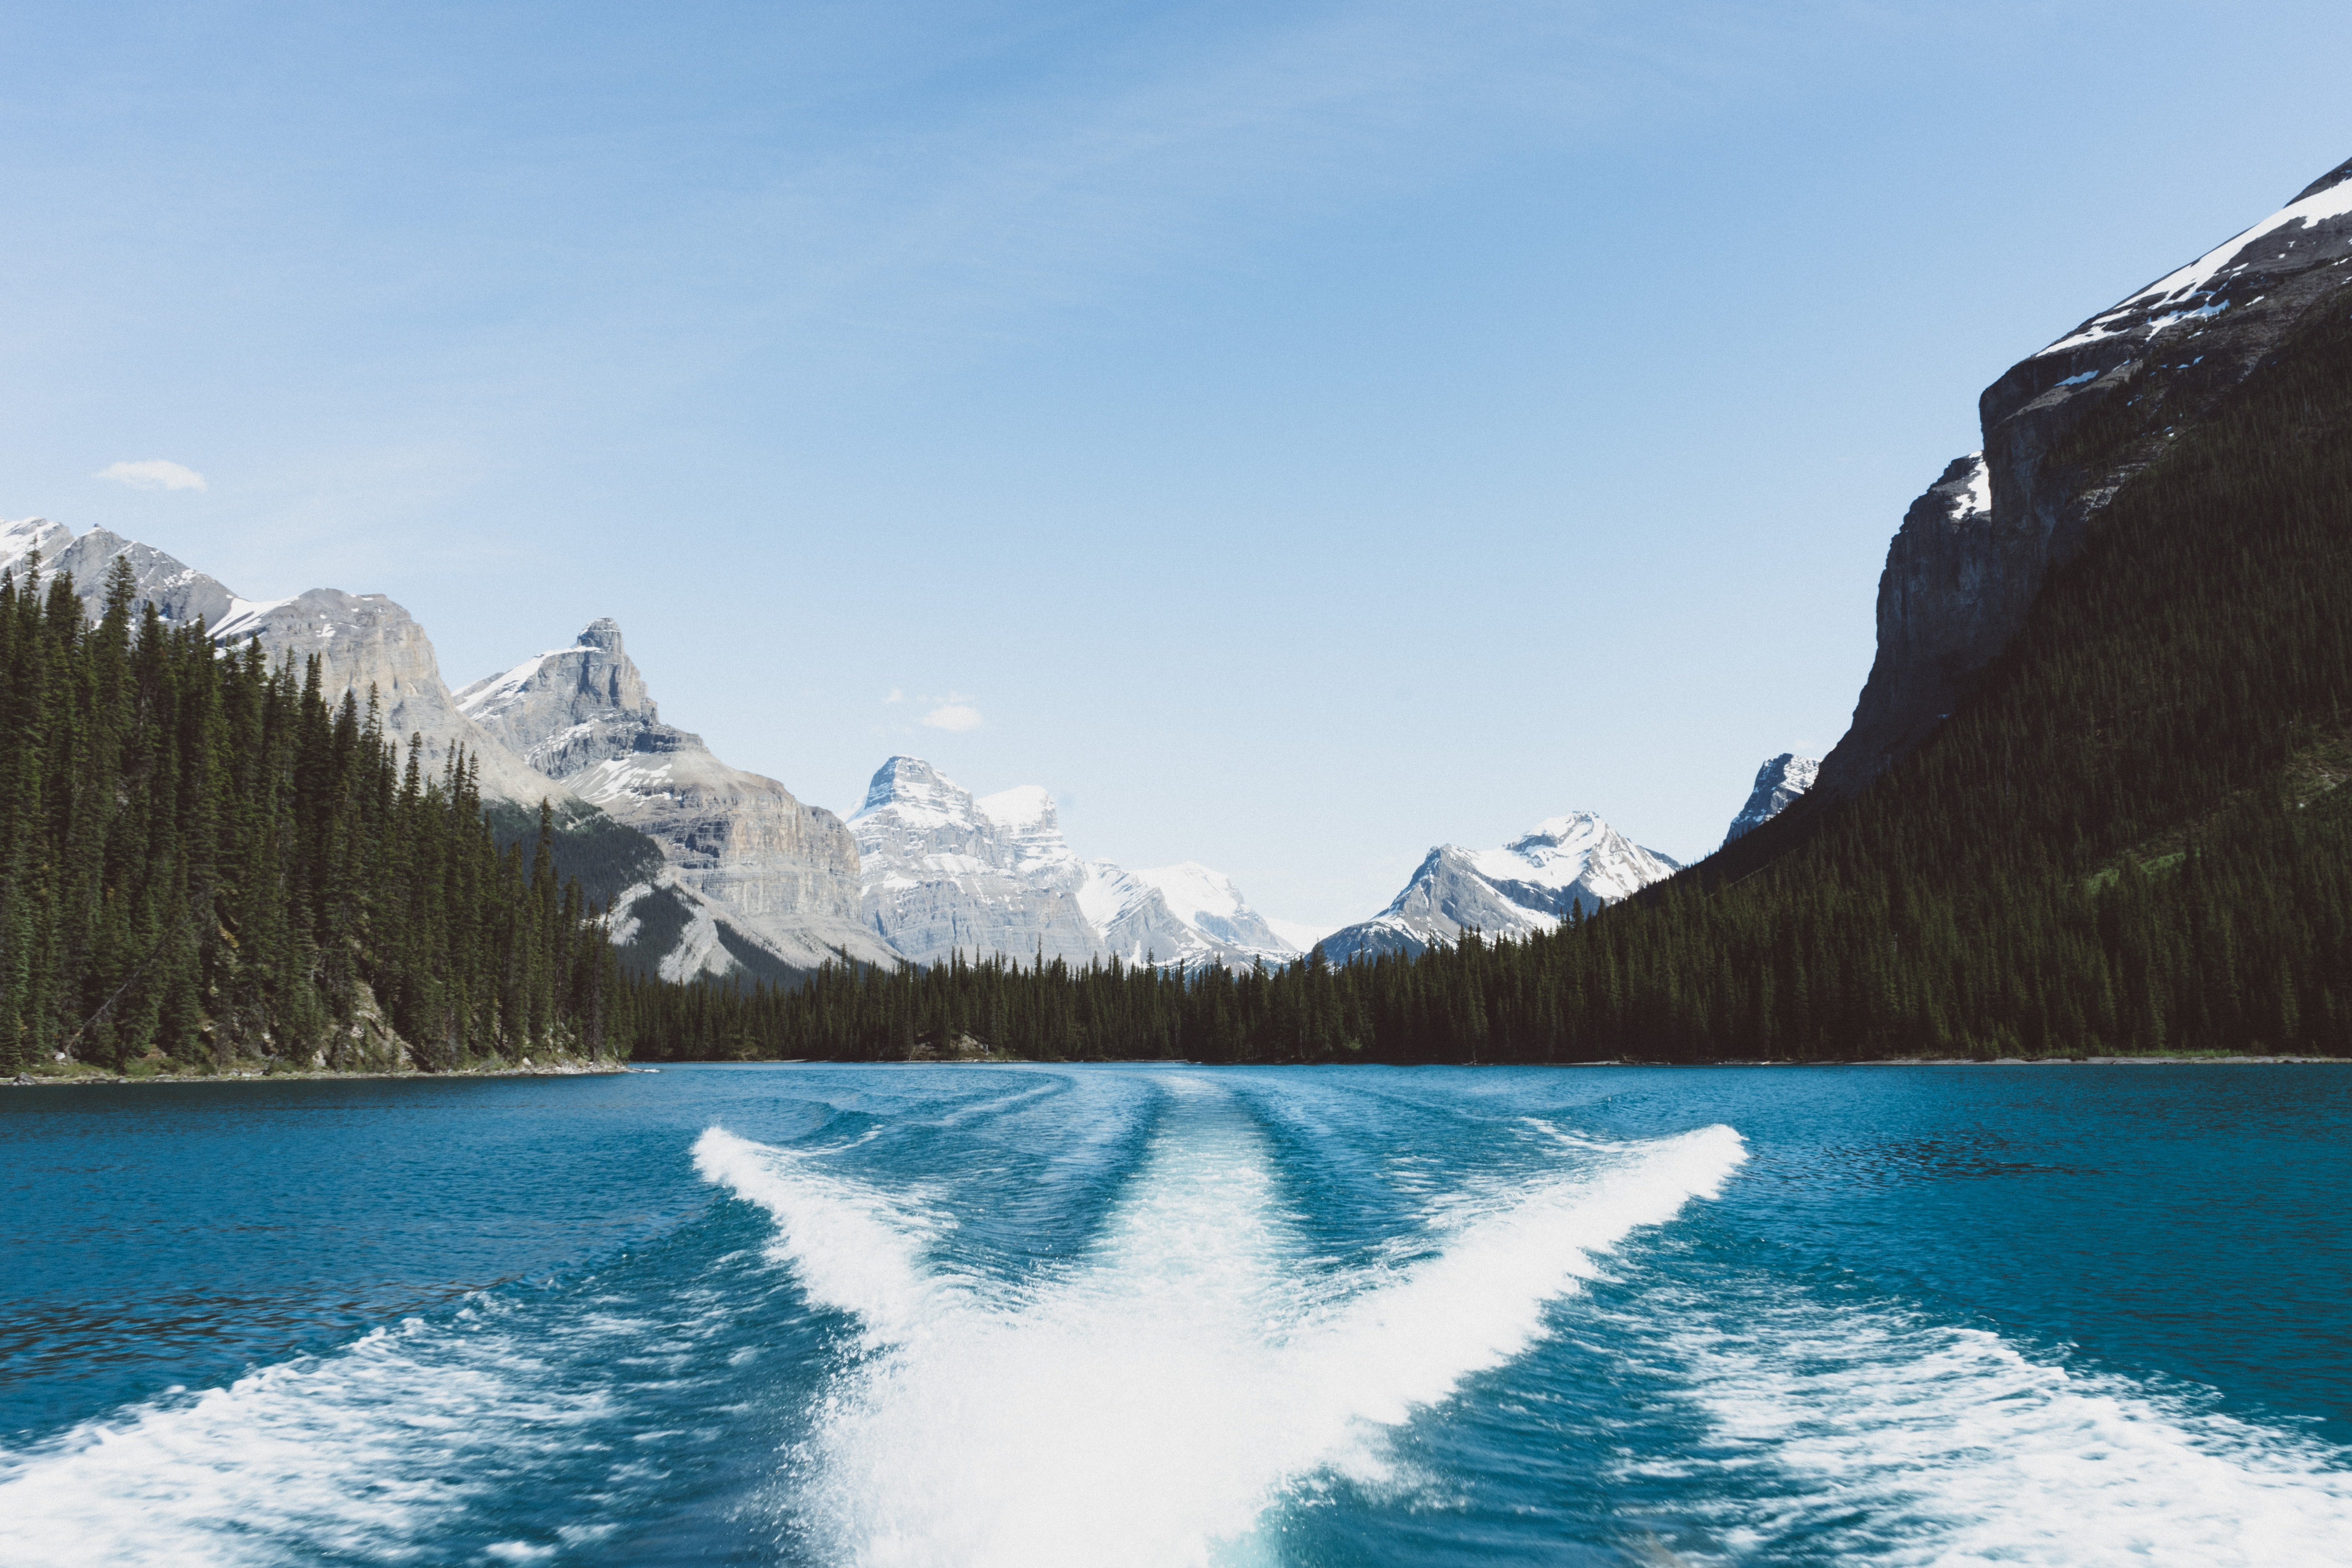 View from a boat on a wake left on the surface of a mountain lake